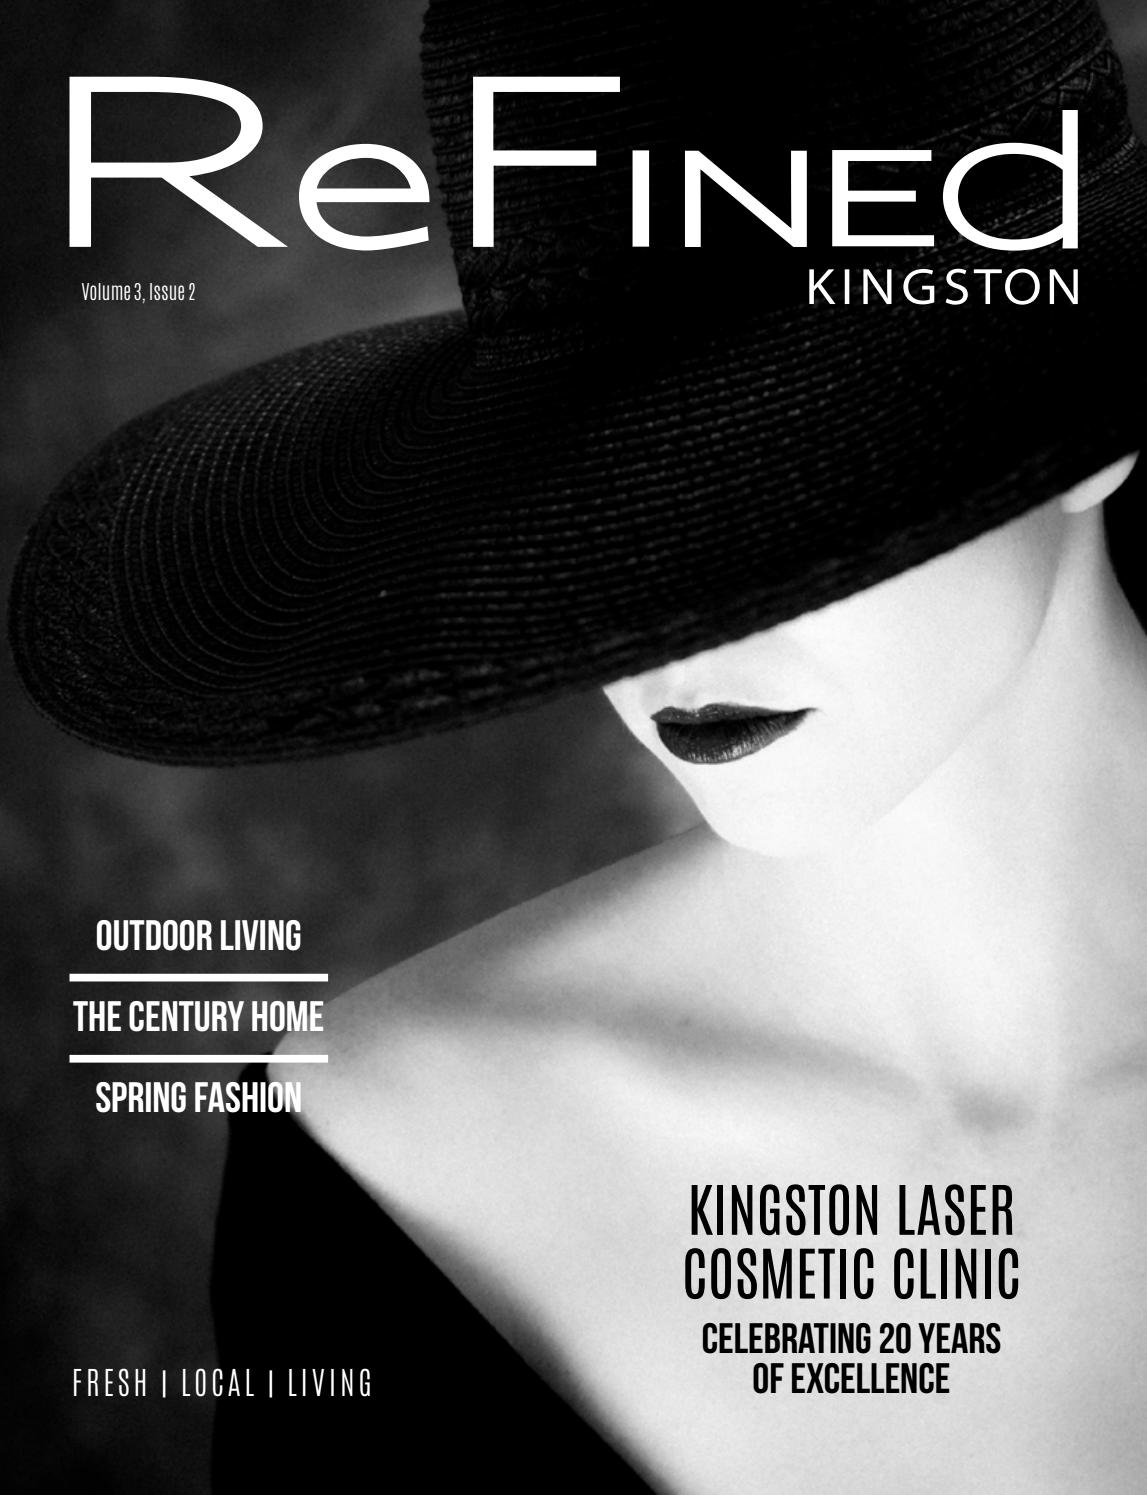 ReFINEd Kingston spring 2018 by Refined Kingston Magazine - issuu